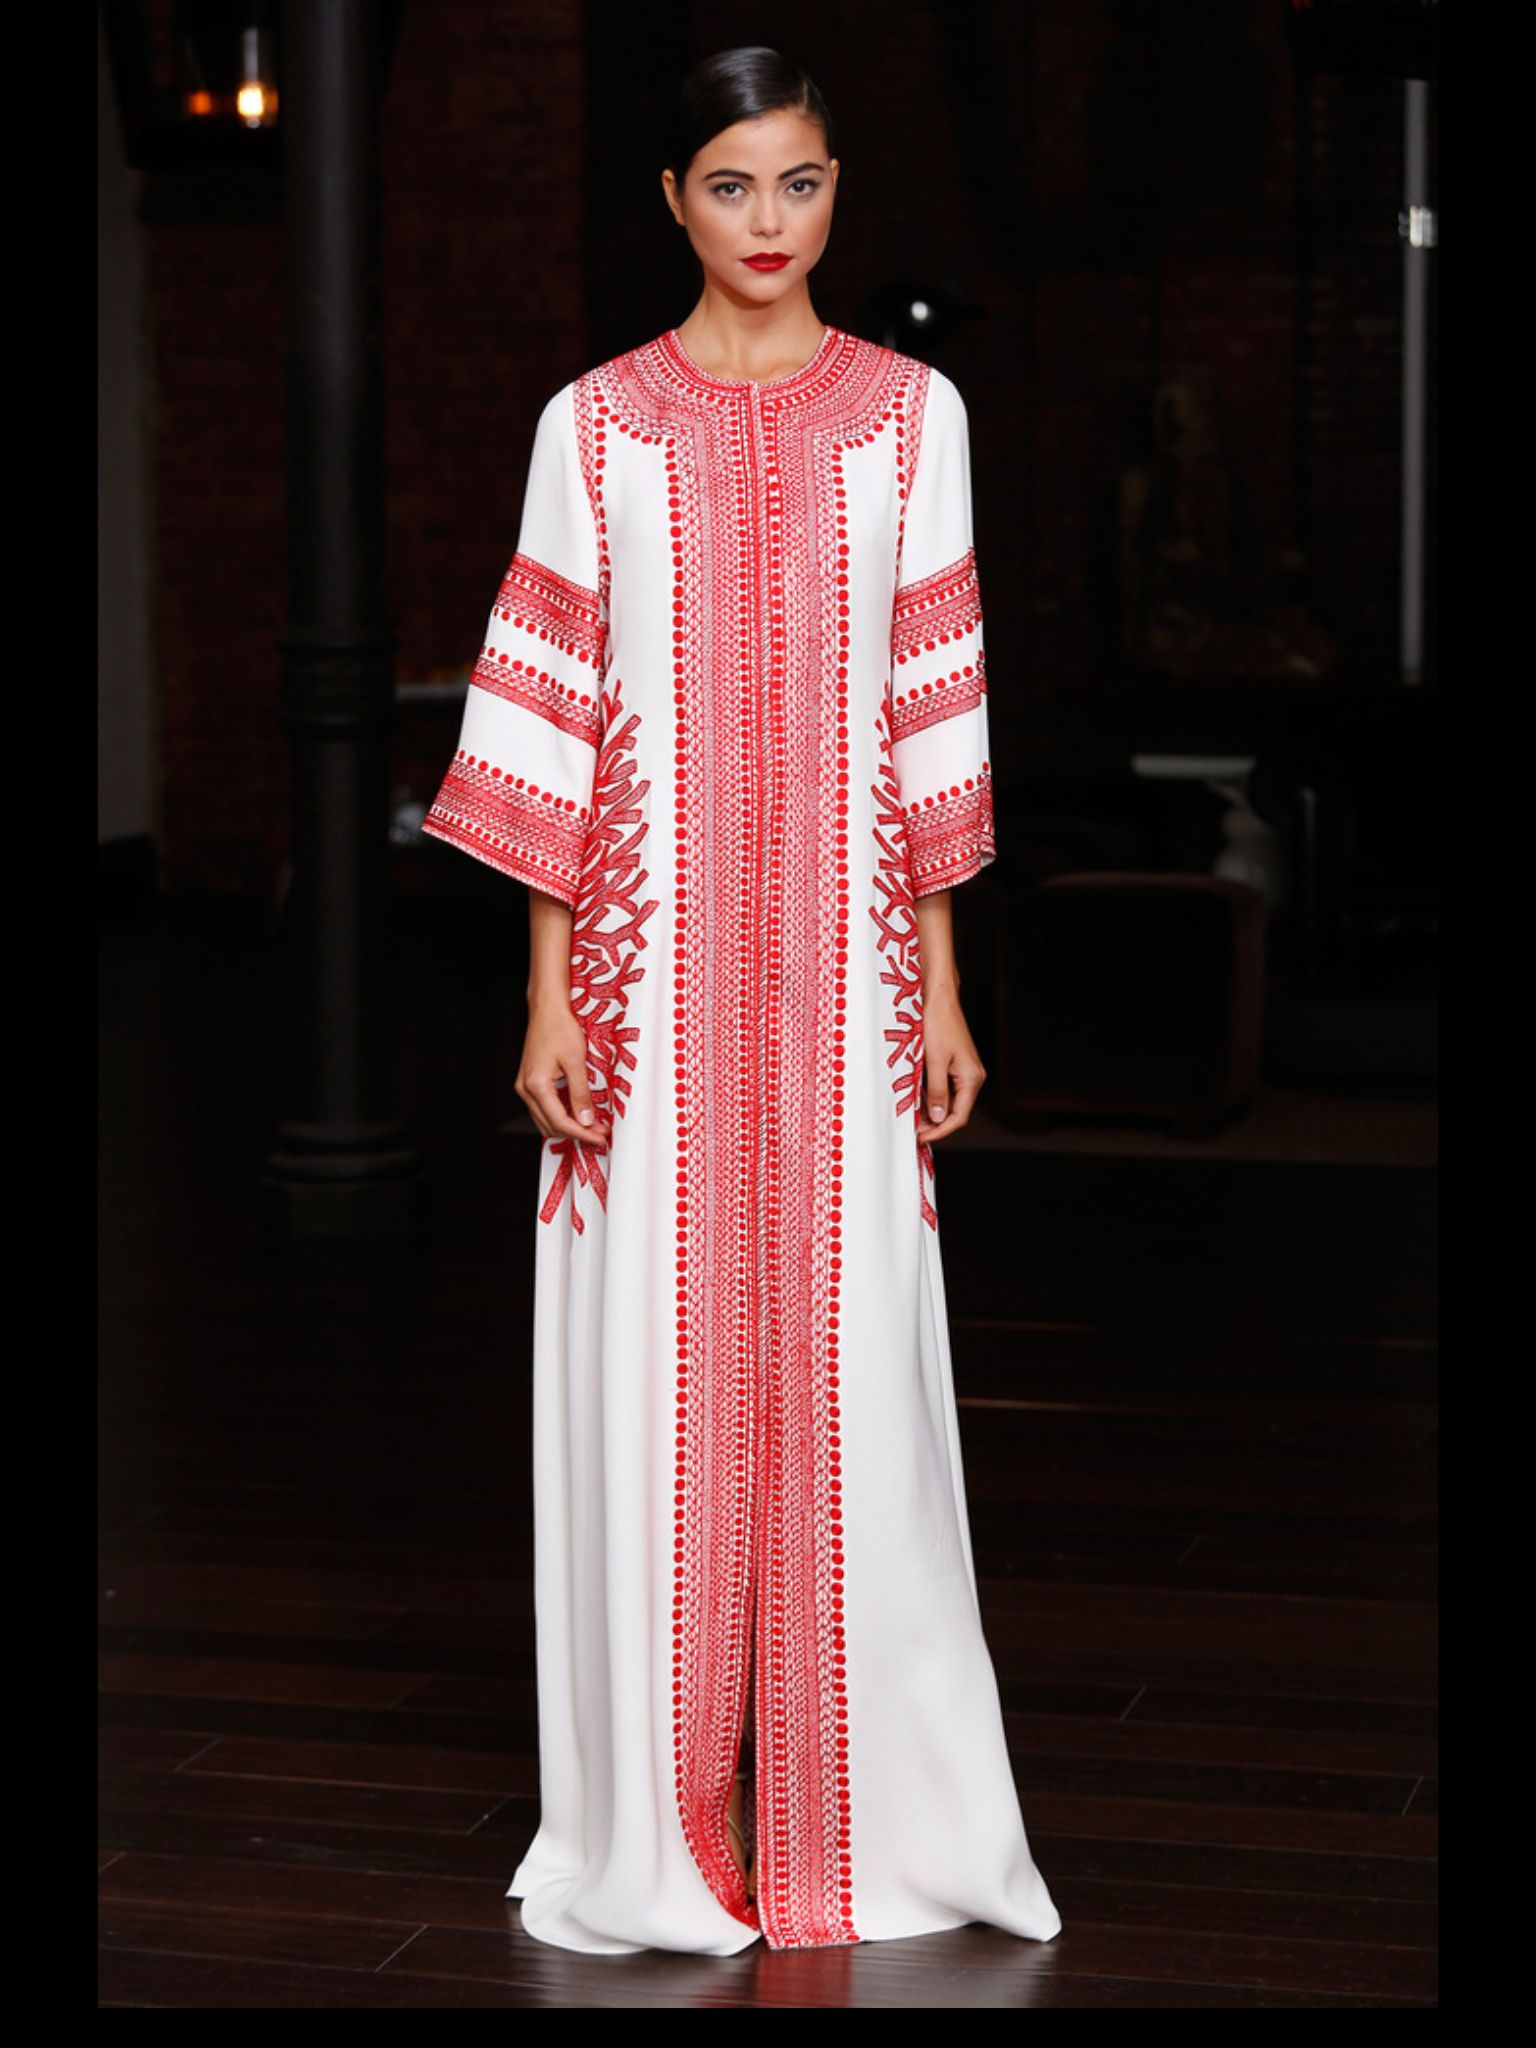 Reem Acra Resort 13 coral emb. And why not a caftan. Why not ...